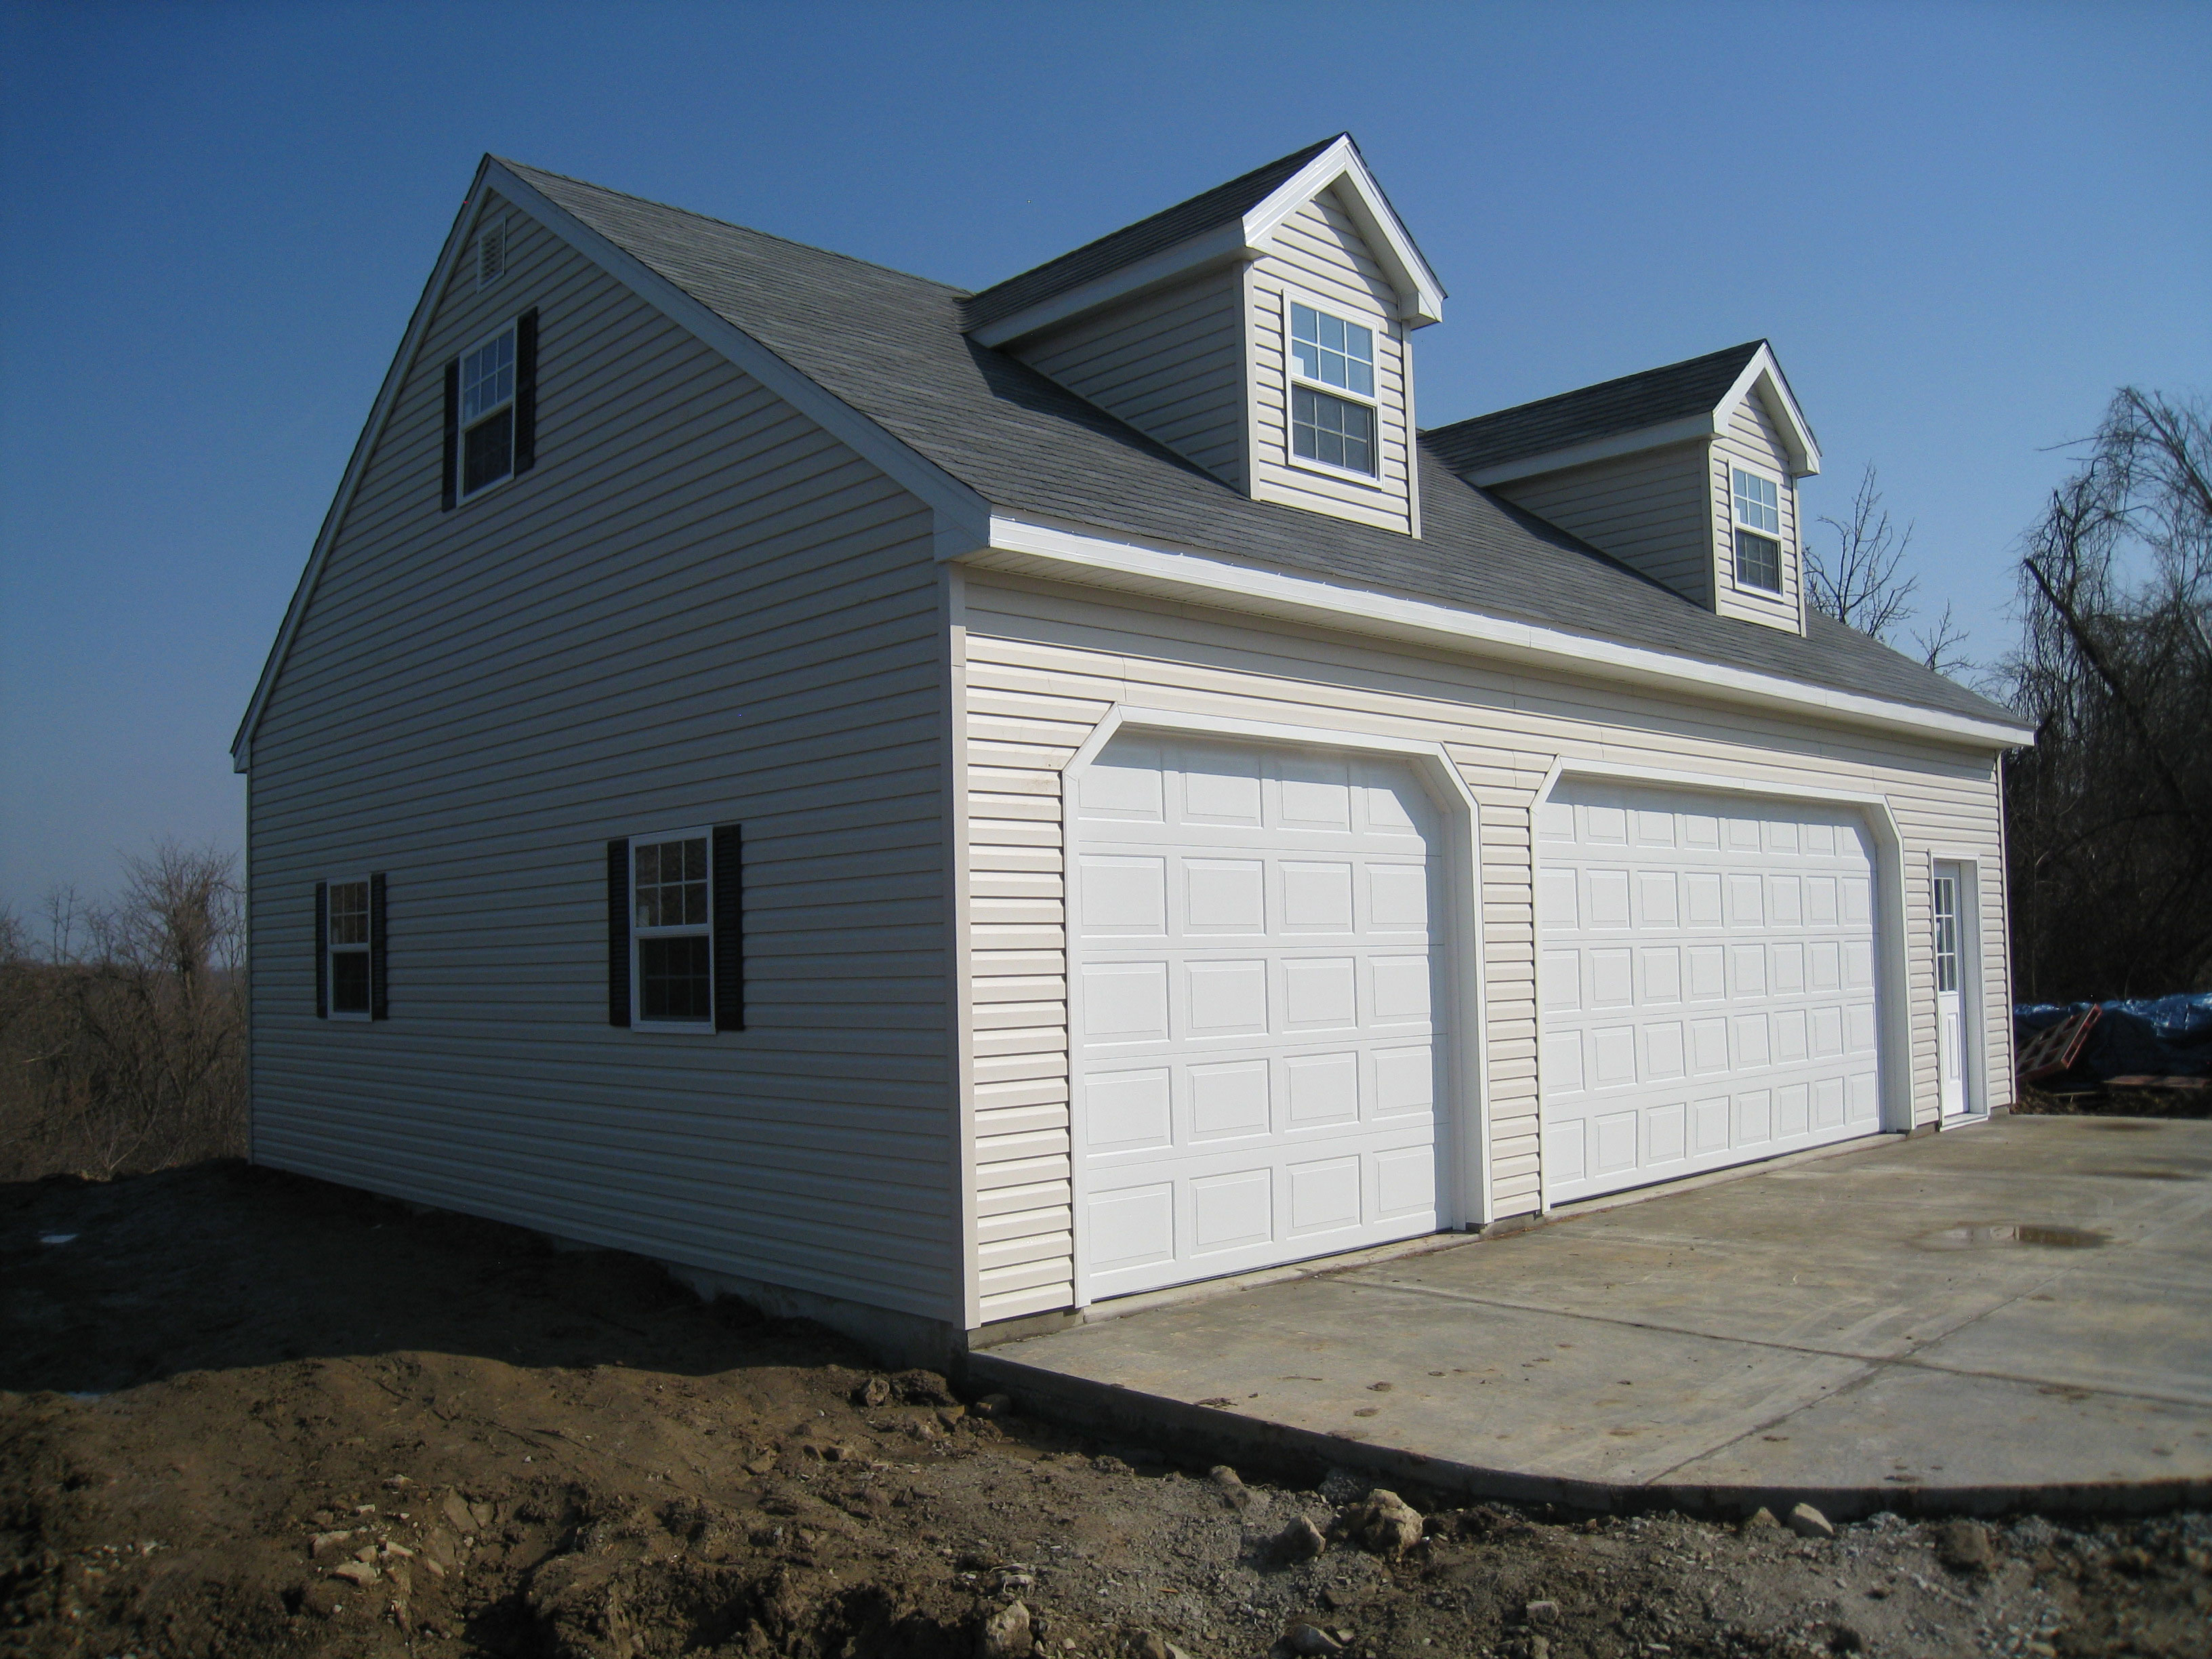 Garage For Sale Long Island Built On Site Custom Amish Garages In Oneonta Ny Amish Barn Company